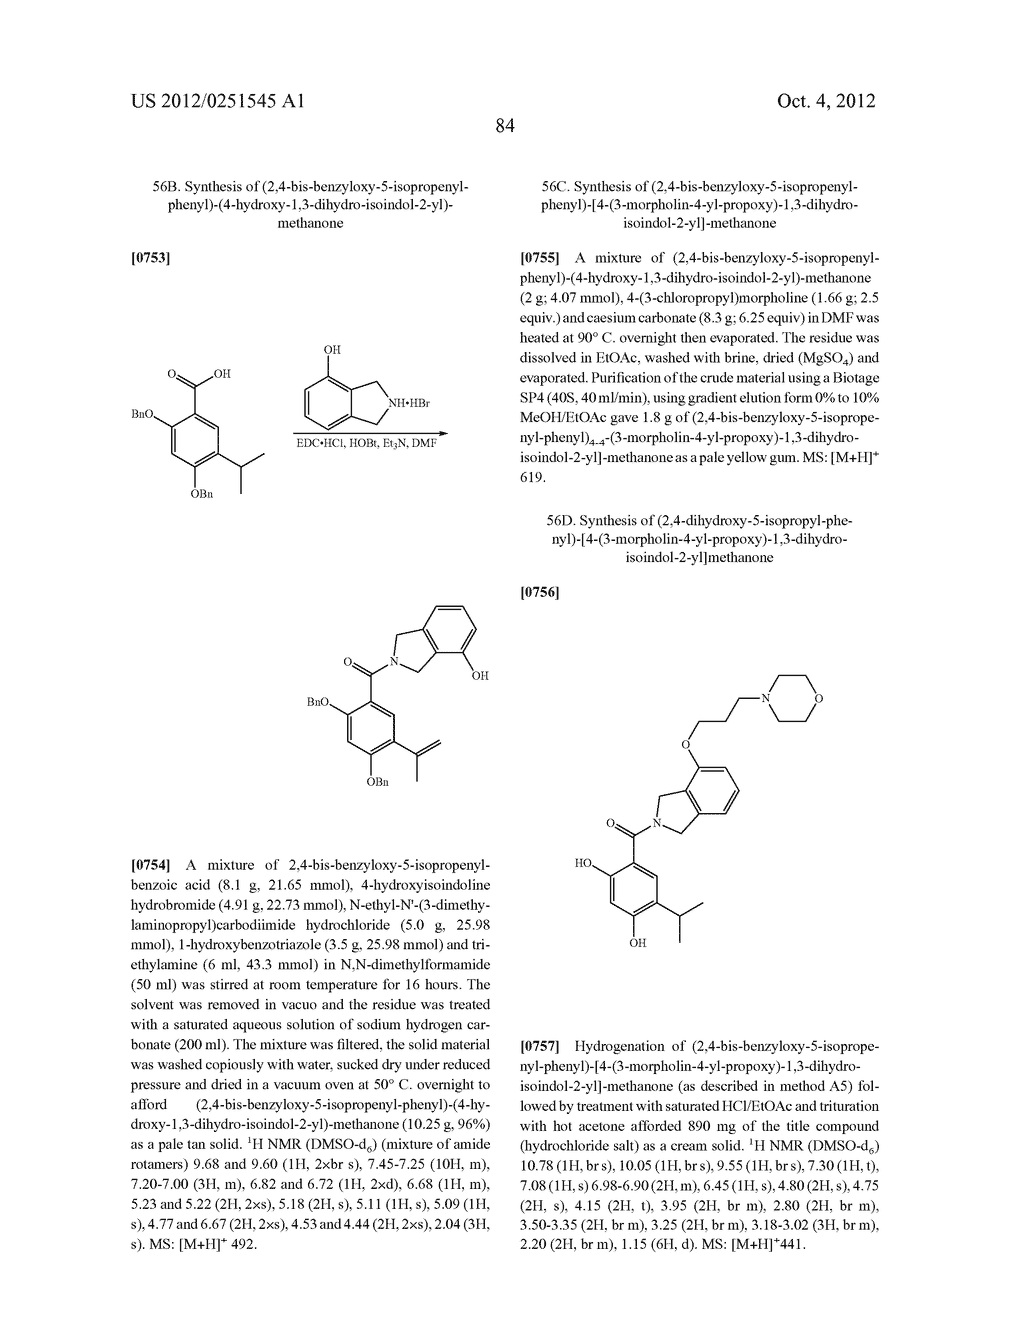 Therapeutic Combinations Of Hydroxybenzamide Derivatives As Inhibitors Of     HSP90 - diagram, schematic, and image 85